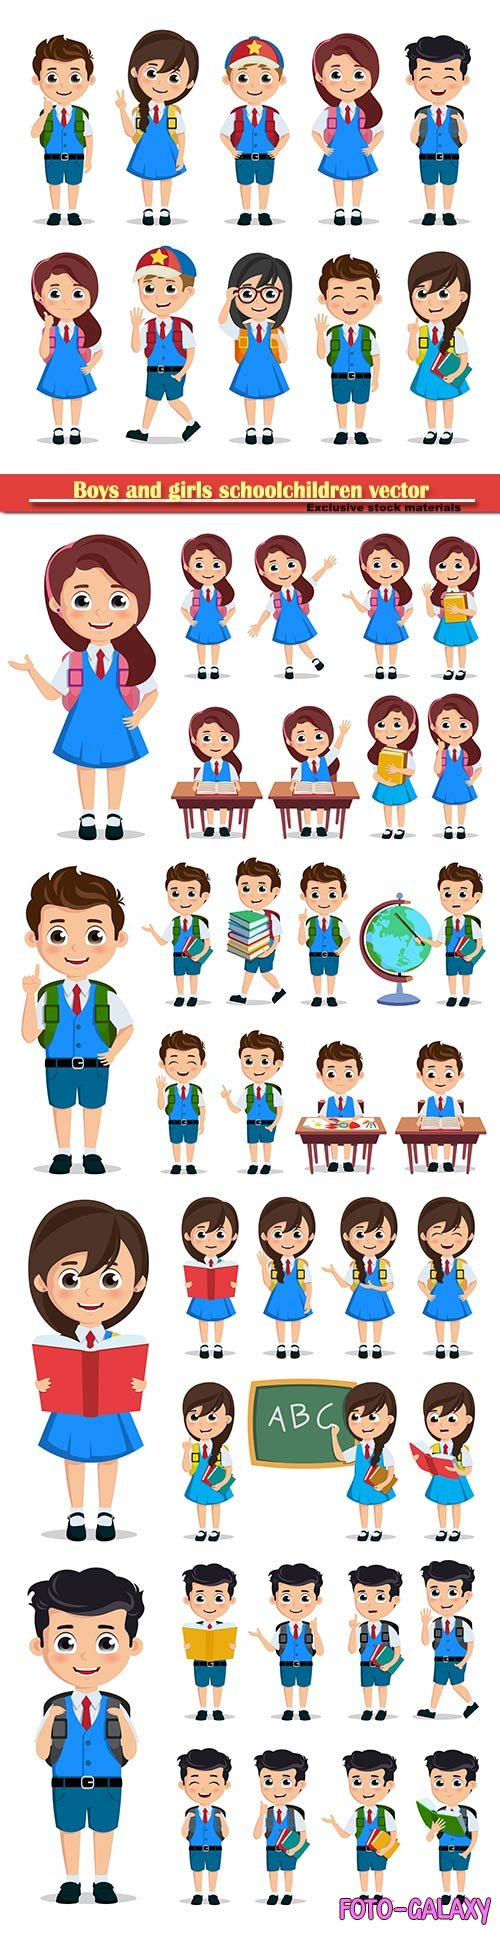 Boys and girls schoolchildren vector illustration